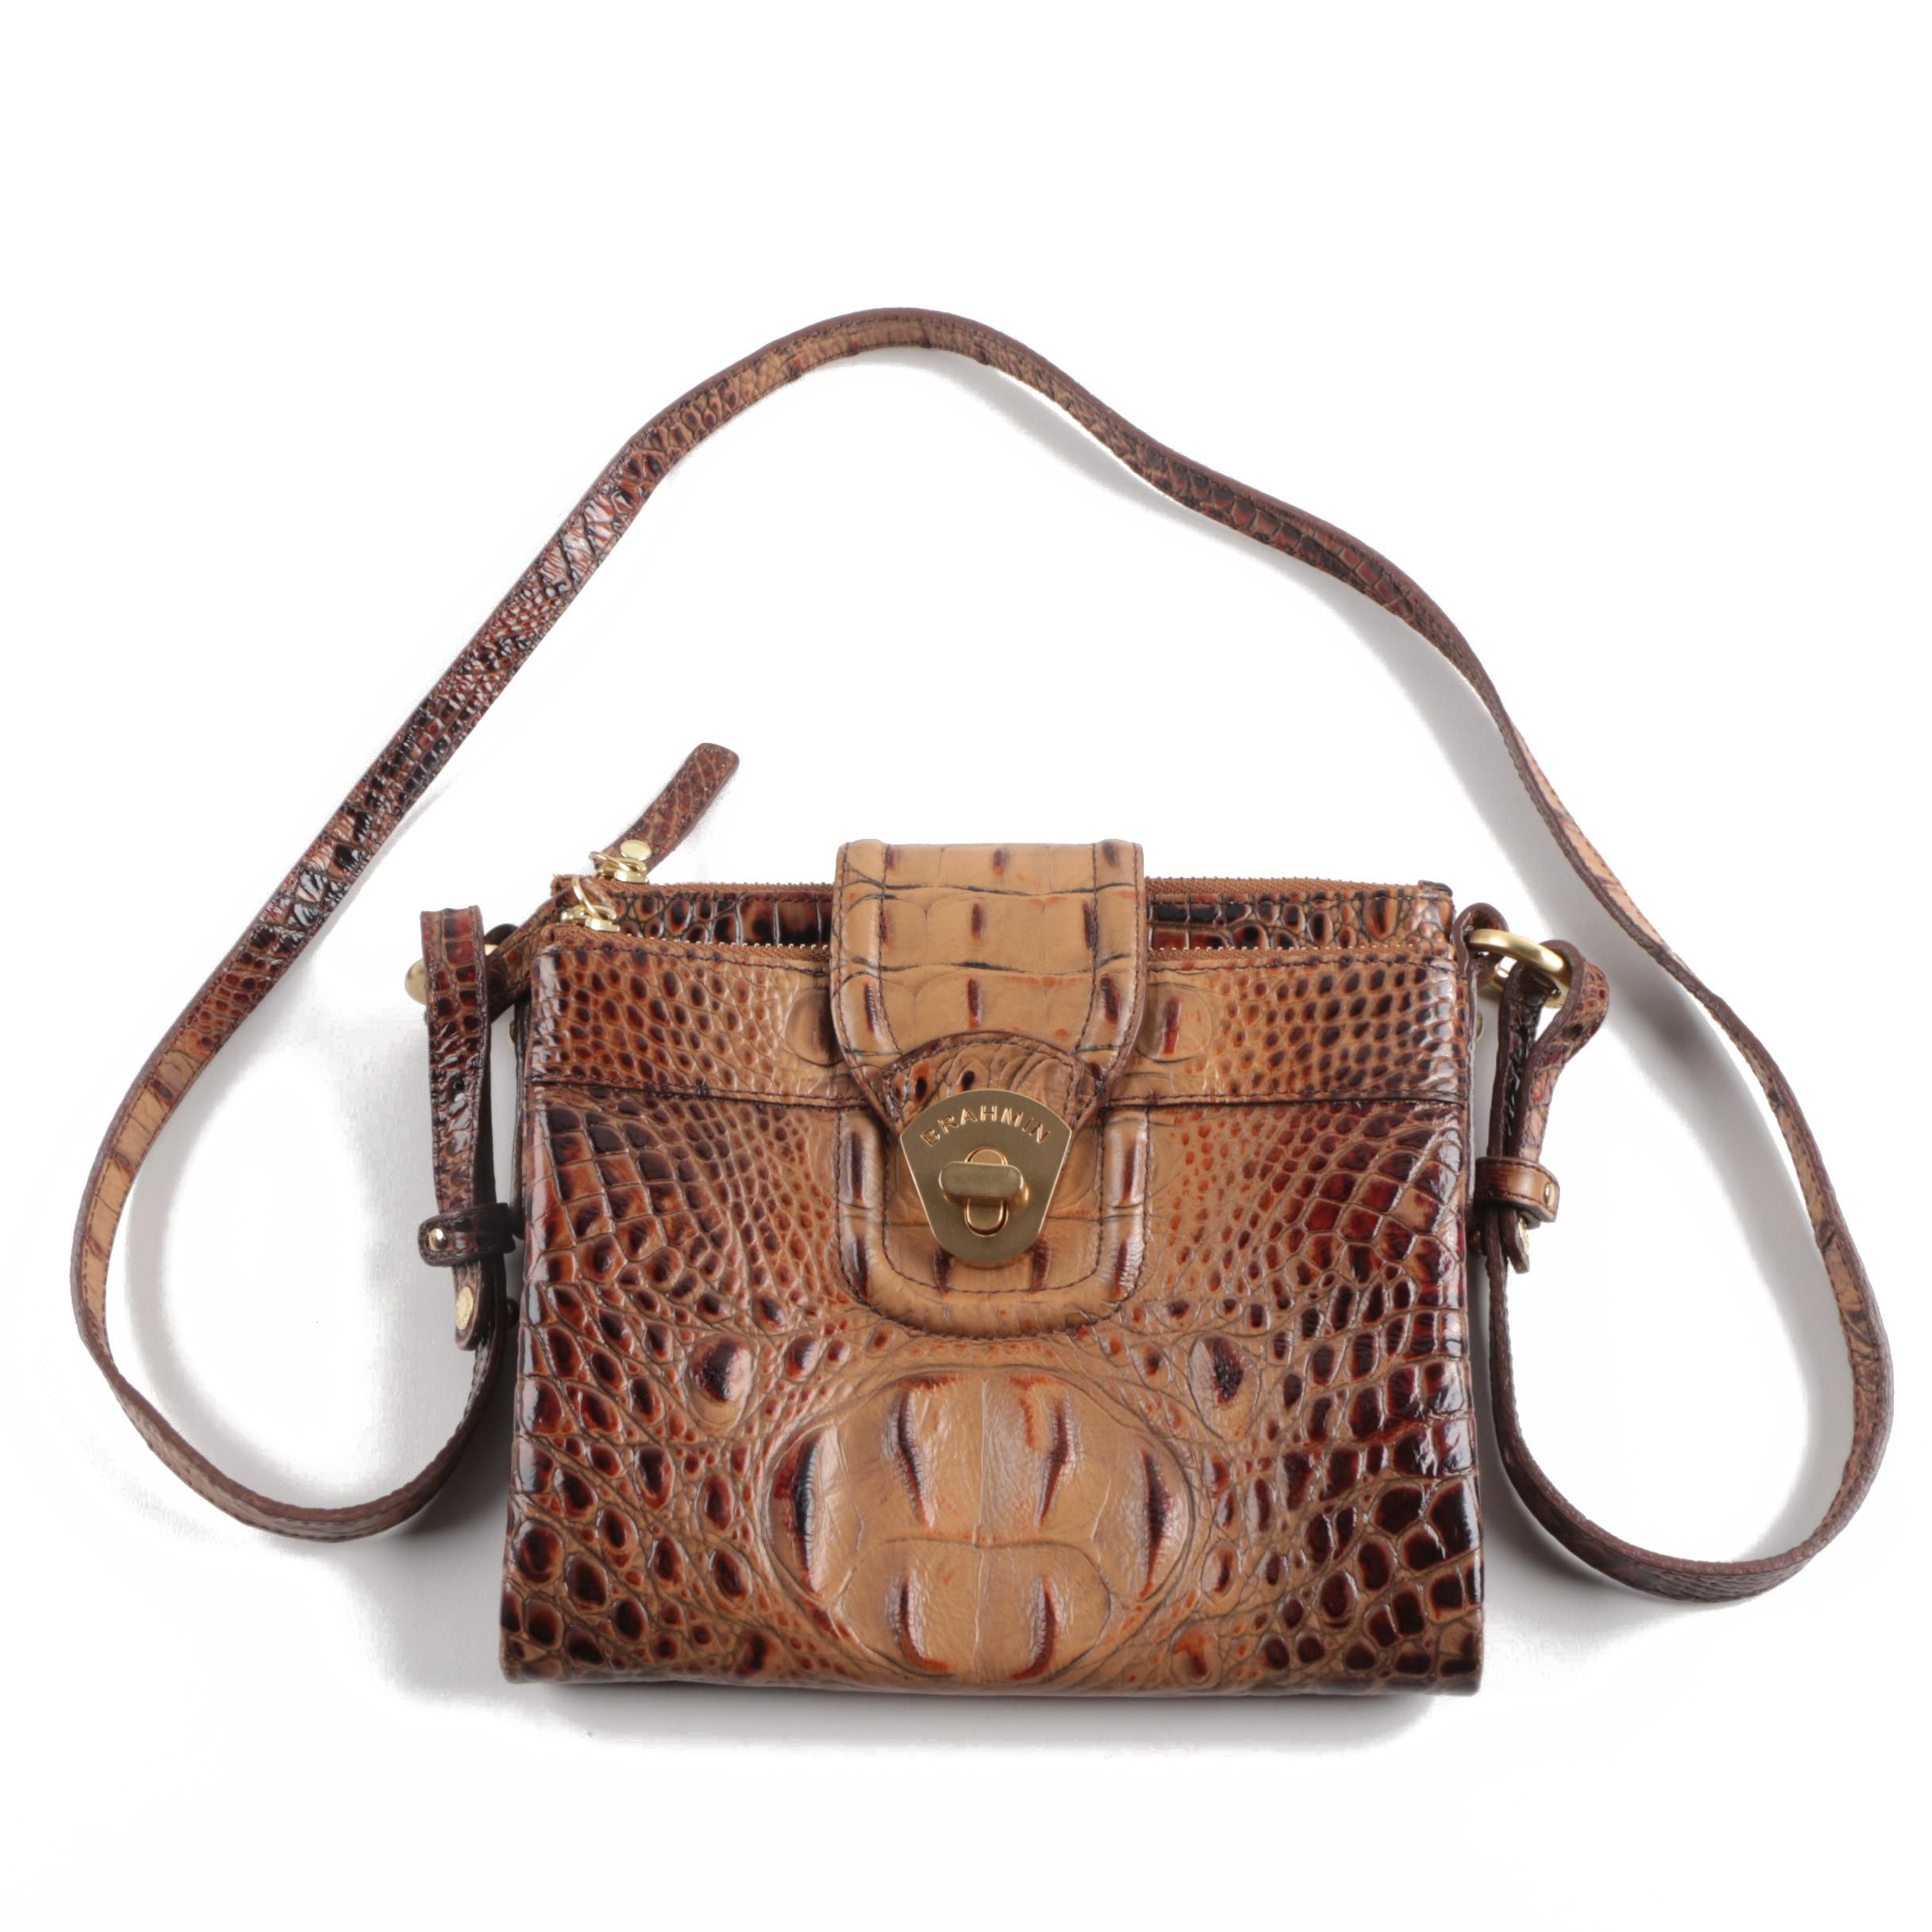 Brahmin Alligator Embossed Leather Handbag